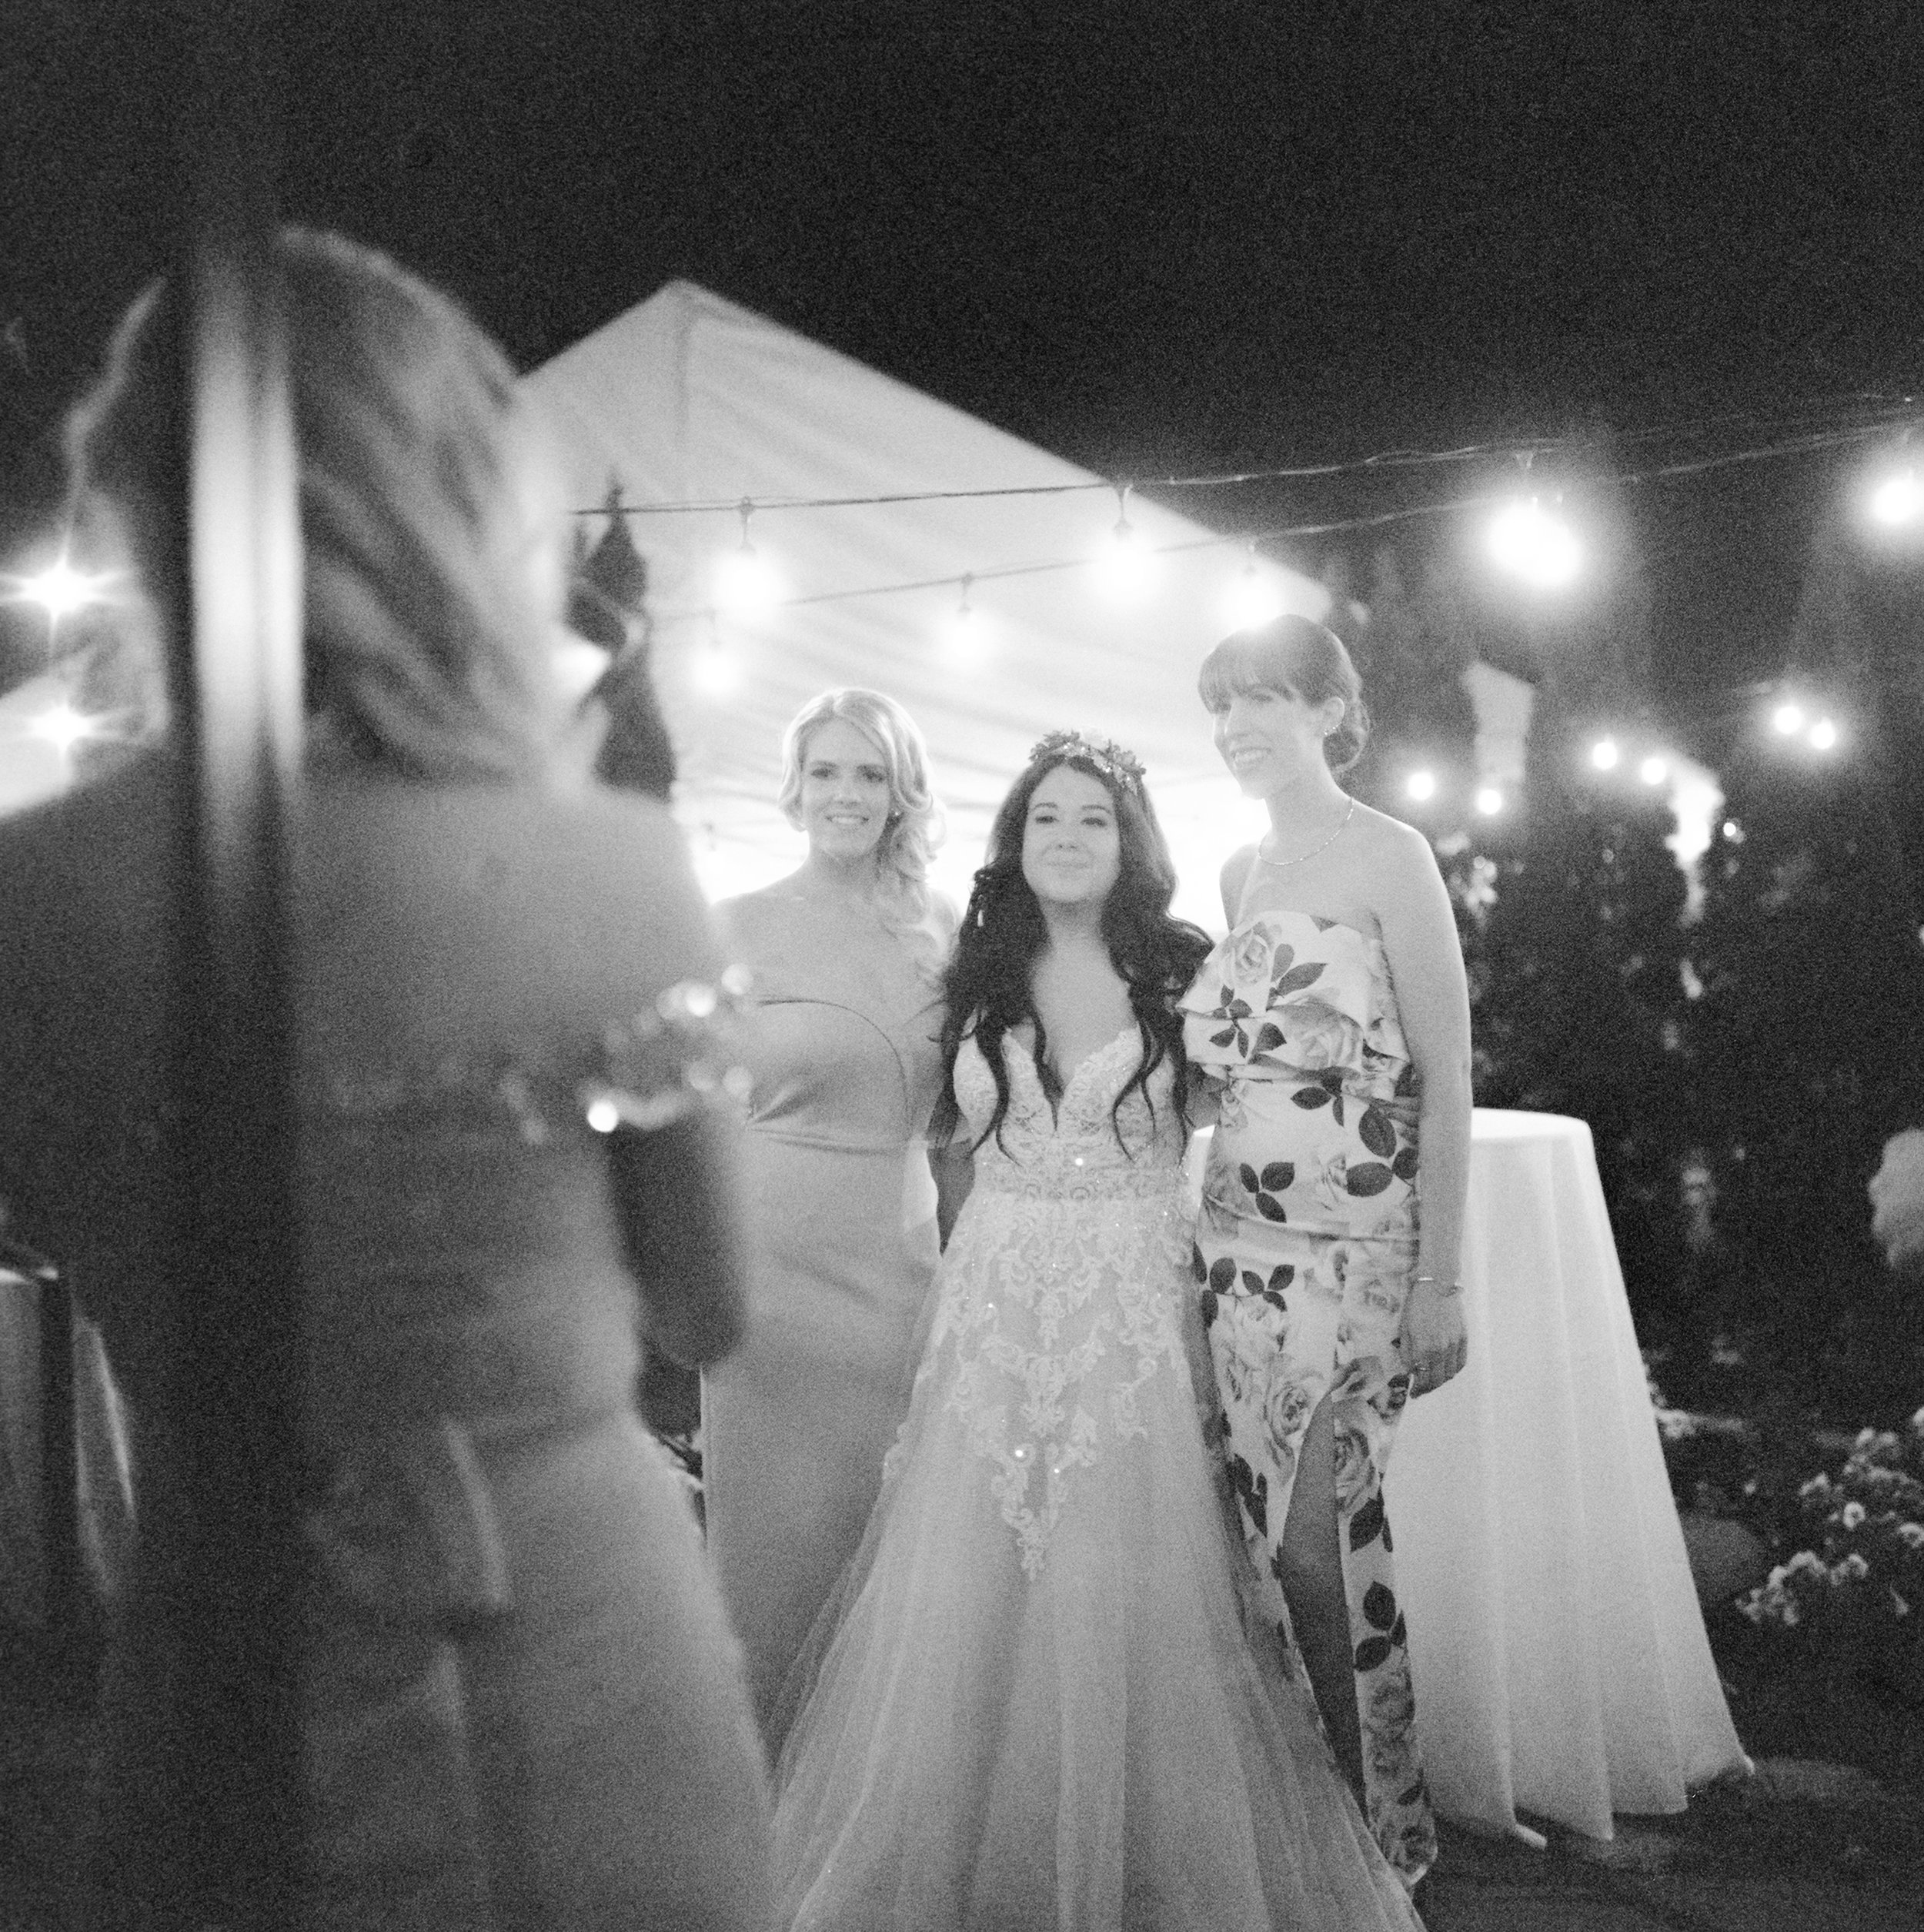 Mariangel+Kieran-Oakeside Mansion Wedding-Bloomfield New Jersey-Film Photography- Olivia Christina Photo-1 (19).JPG